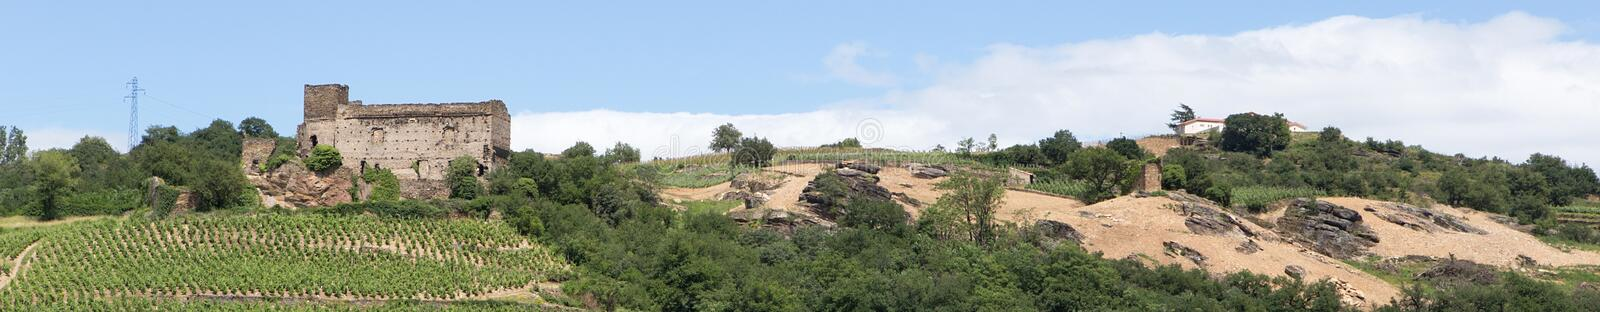 Vineyard and Ruin by the River Rhone, France royalty free stock image